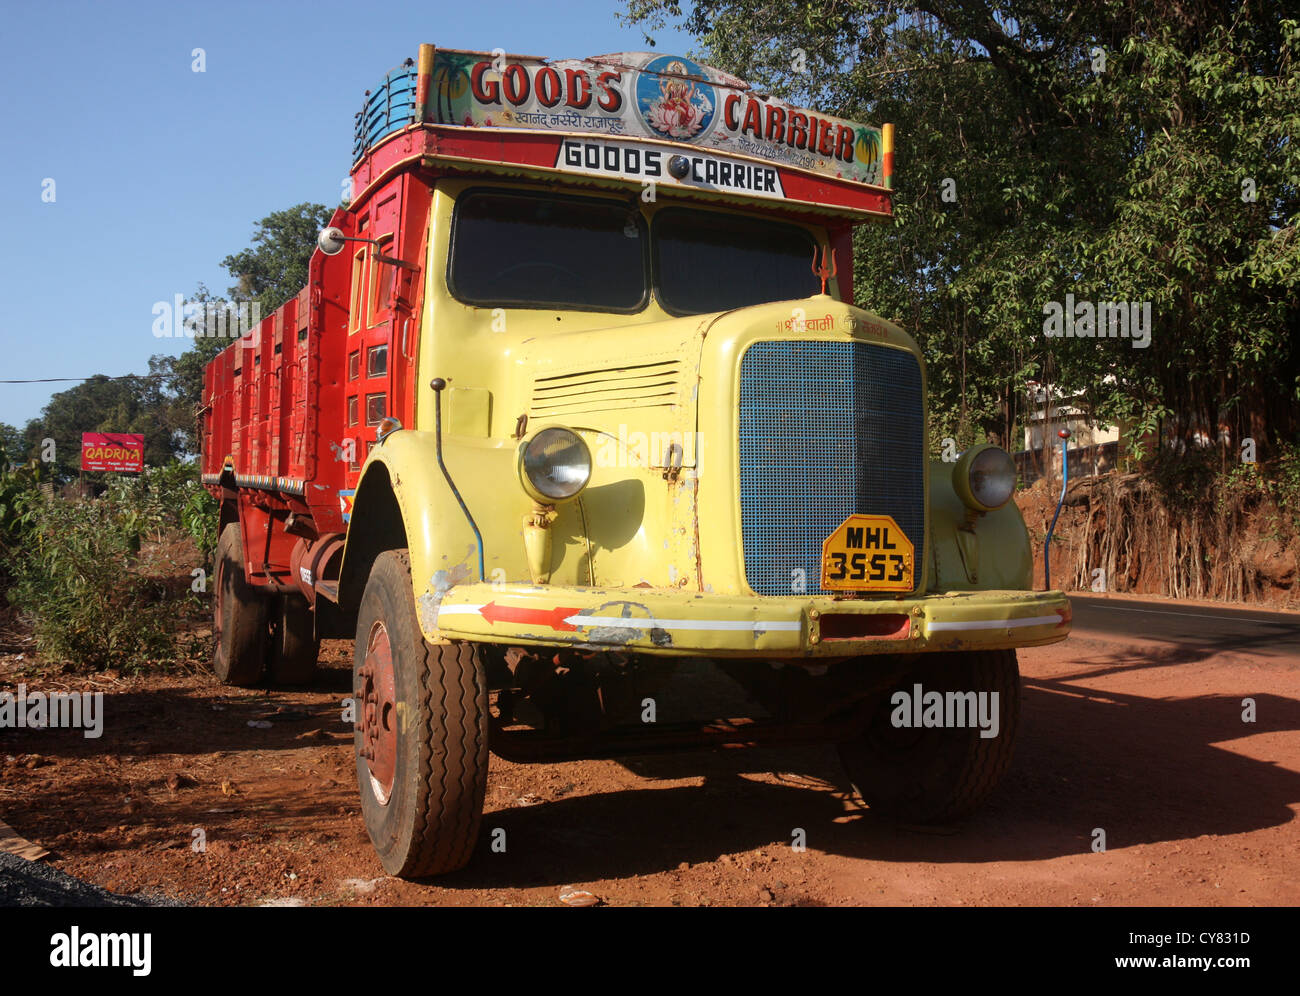 Old Tata Truck Stock Photos & Old Tata Truck Stock Images - Alamy